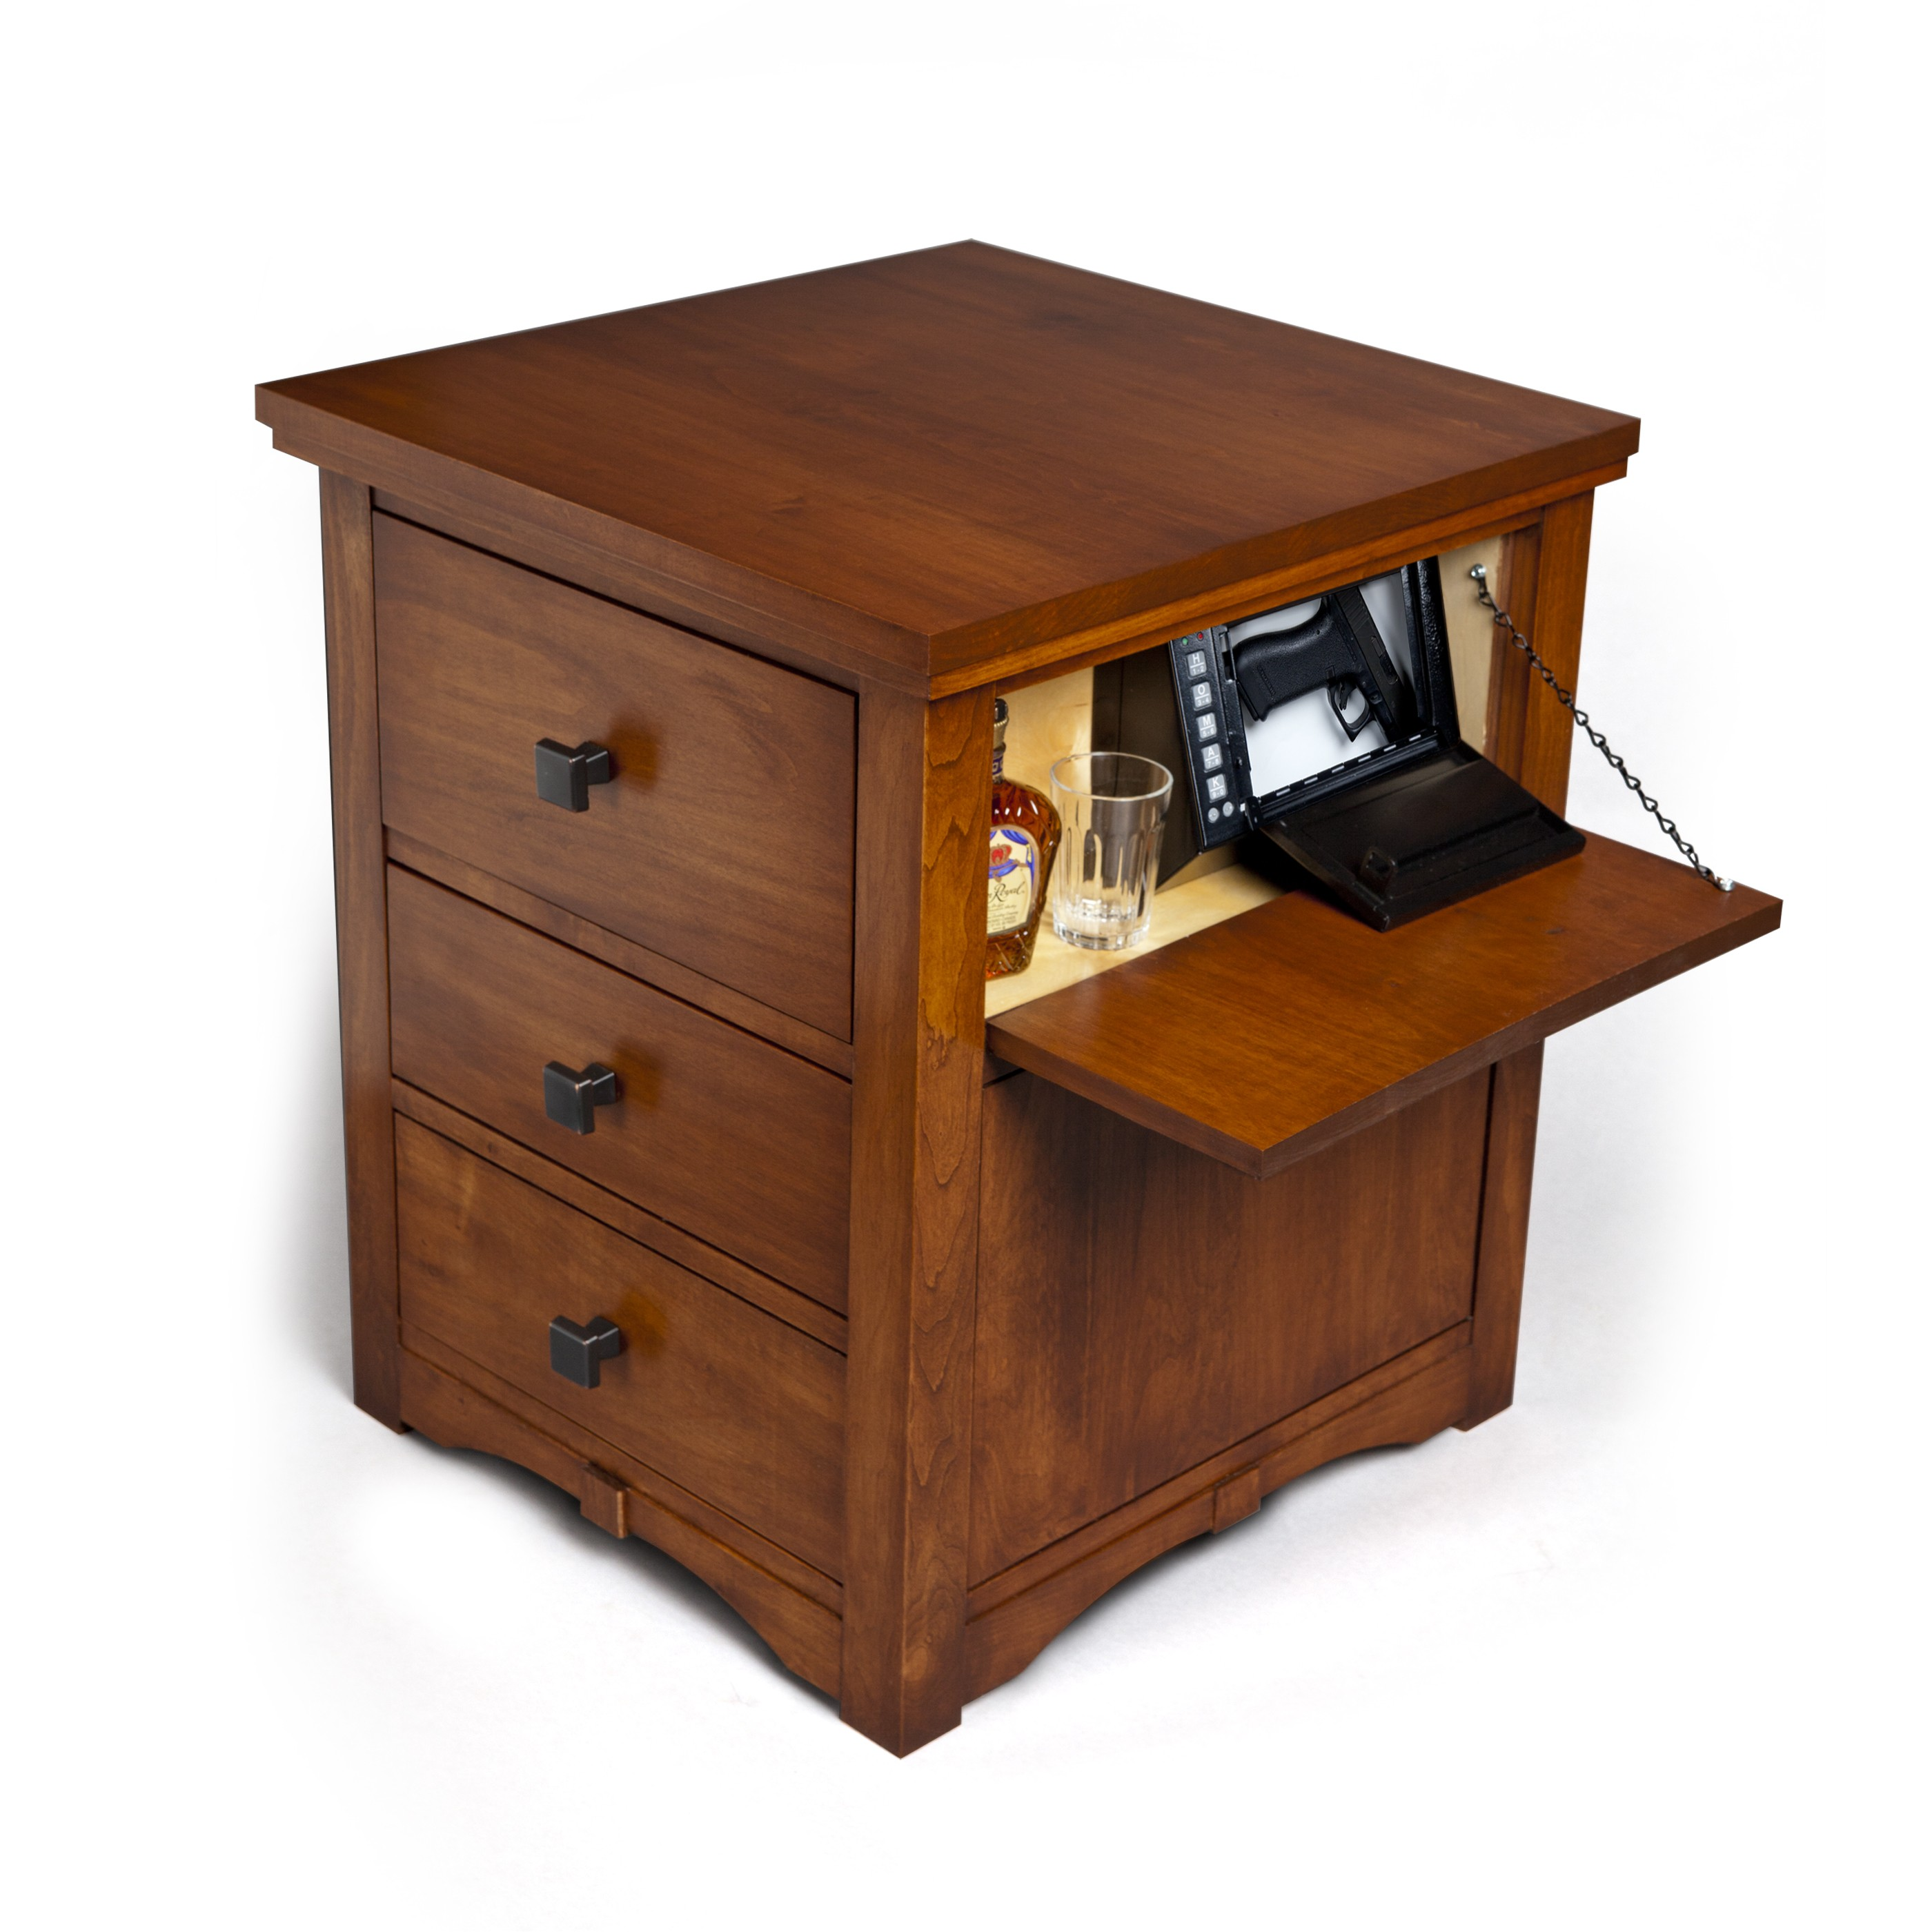 Bedside Table With Secret Compartment 520447300661760422 together with 225391156324948567 likewise Secret ...